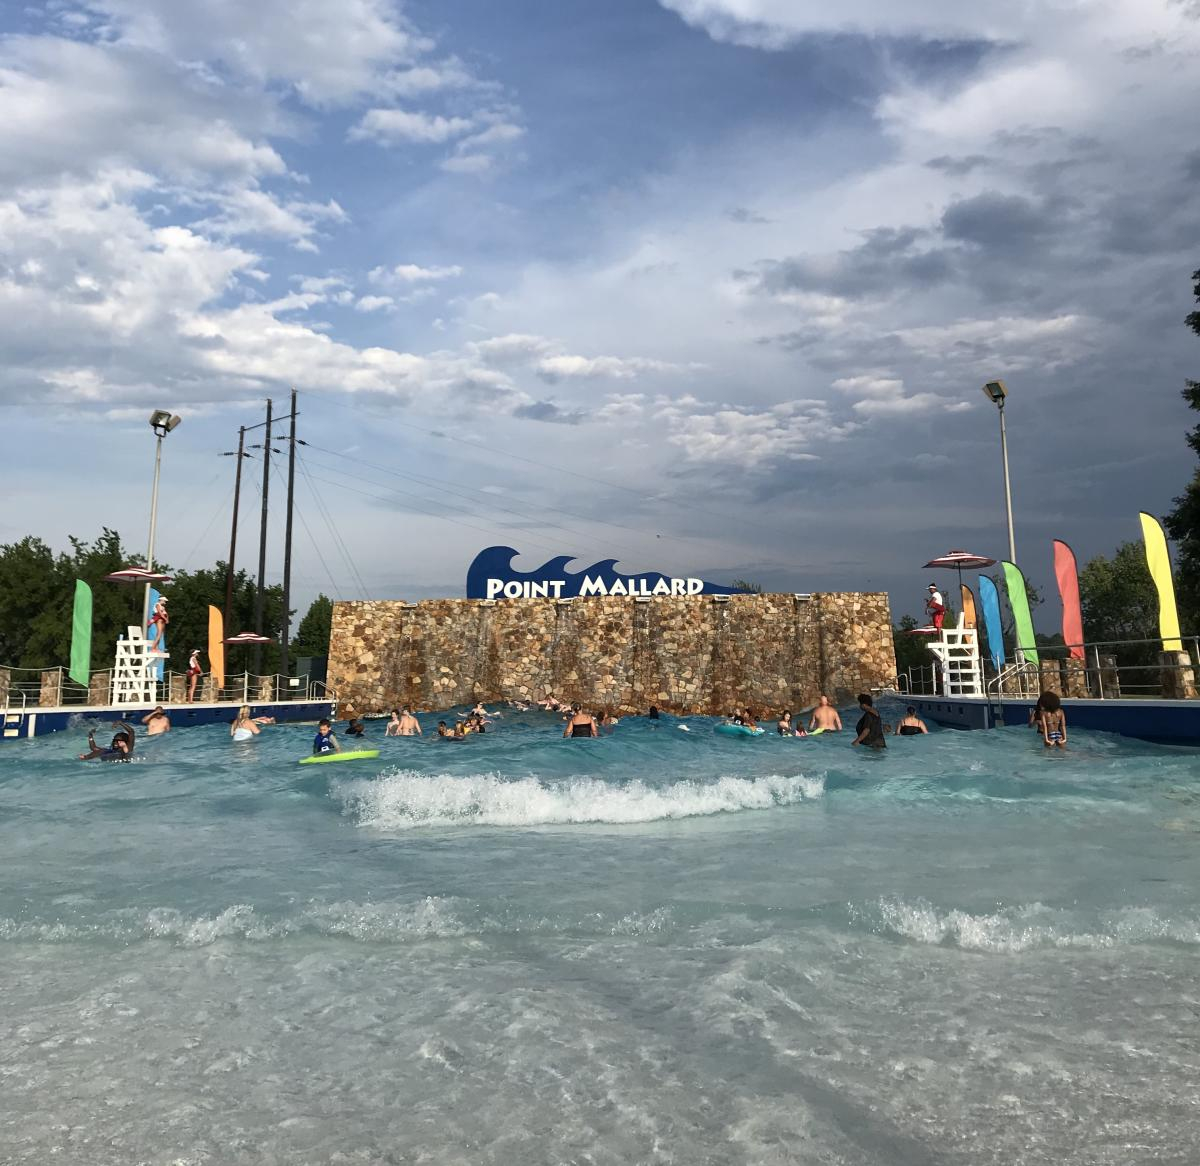 point mallard wave pool